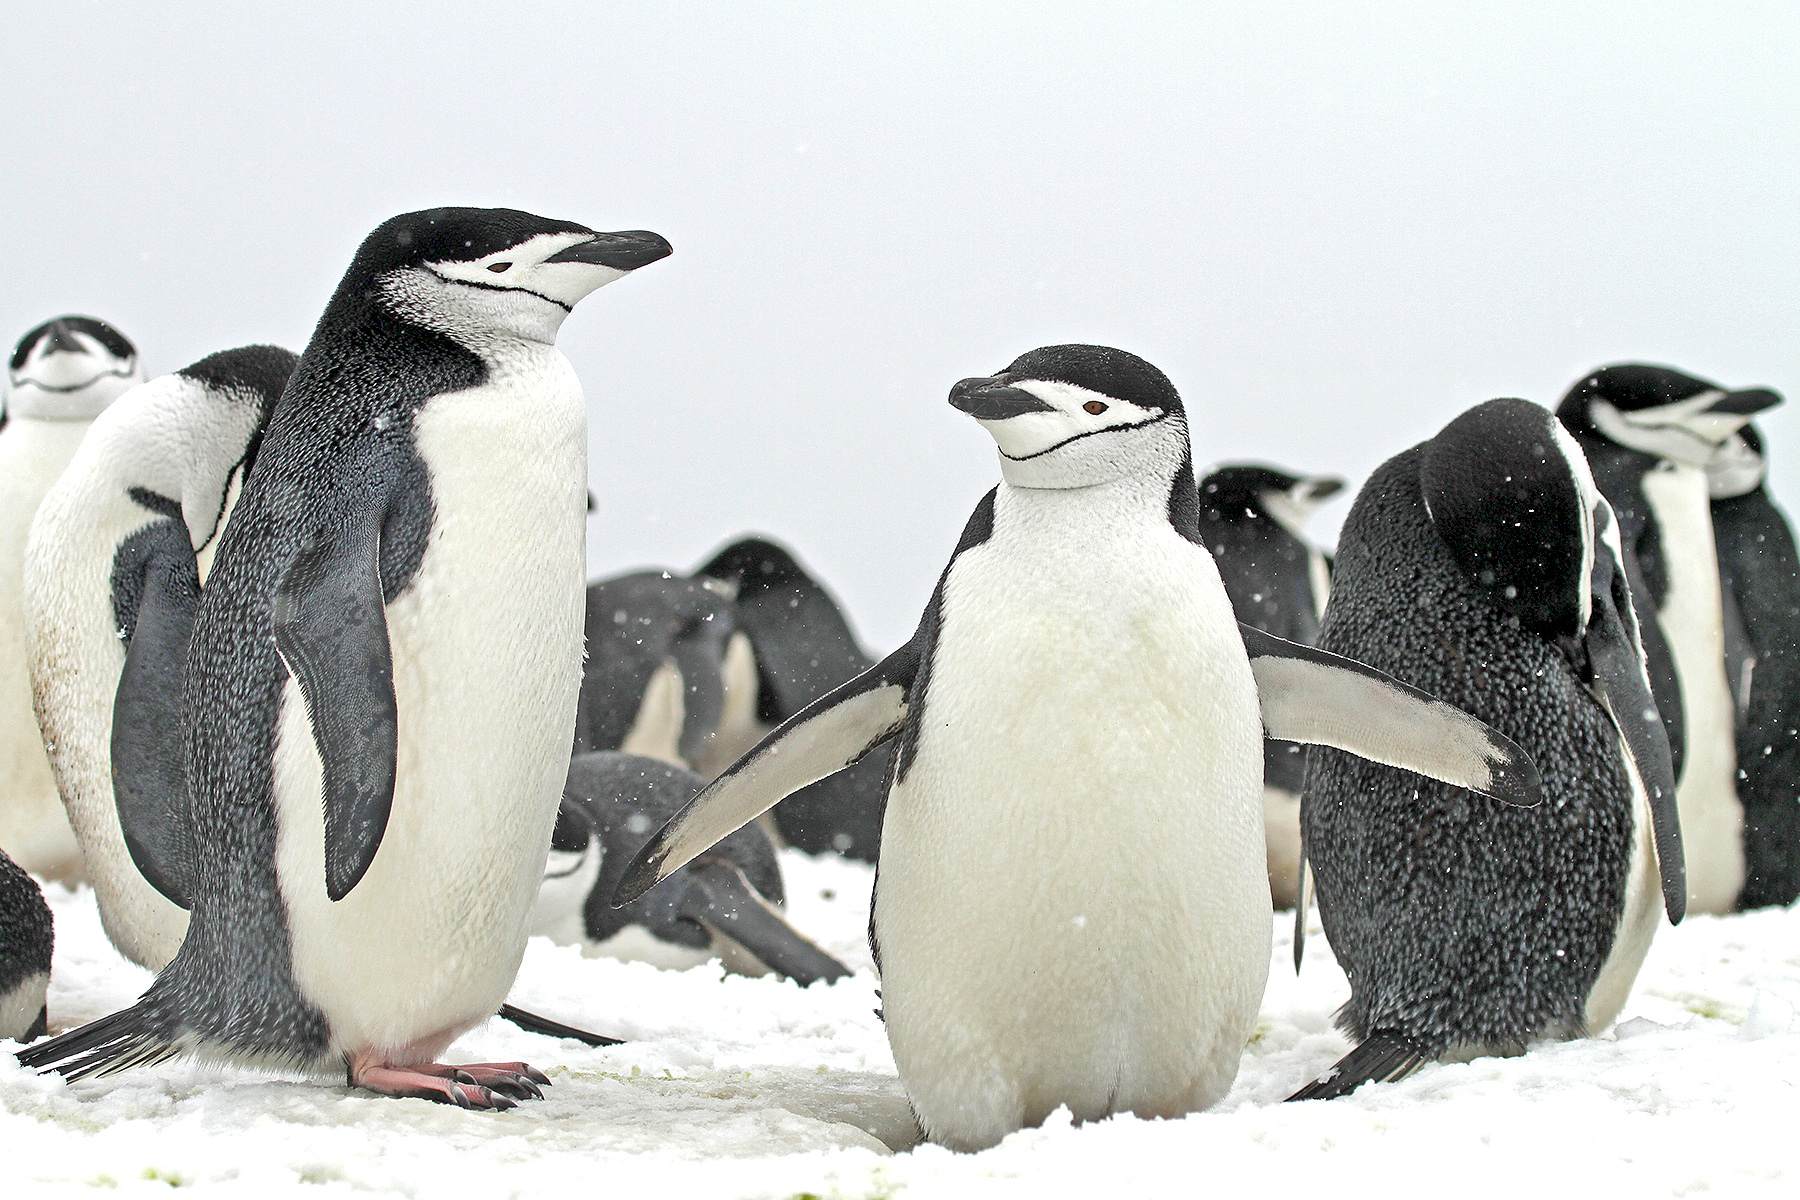 Chinstrap Penguins on our Antarctica birding tour (image by Pete Morris)